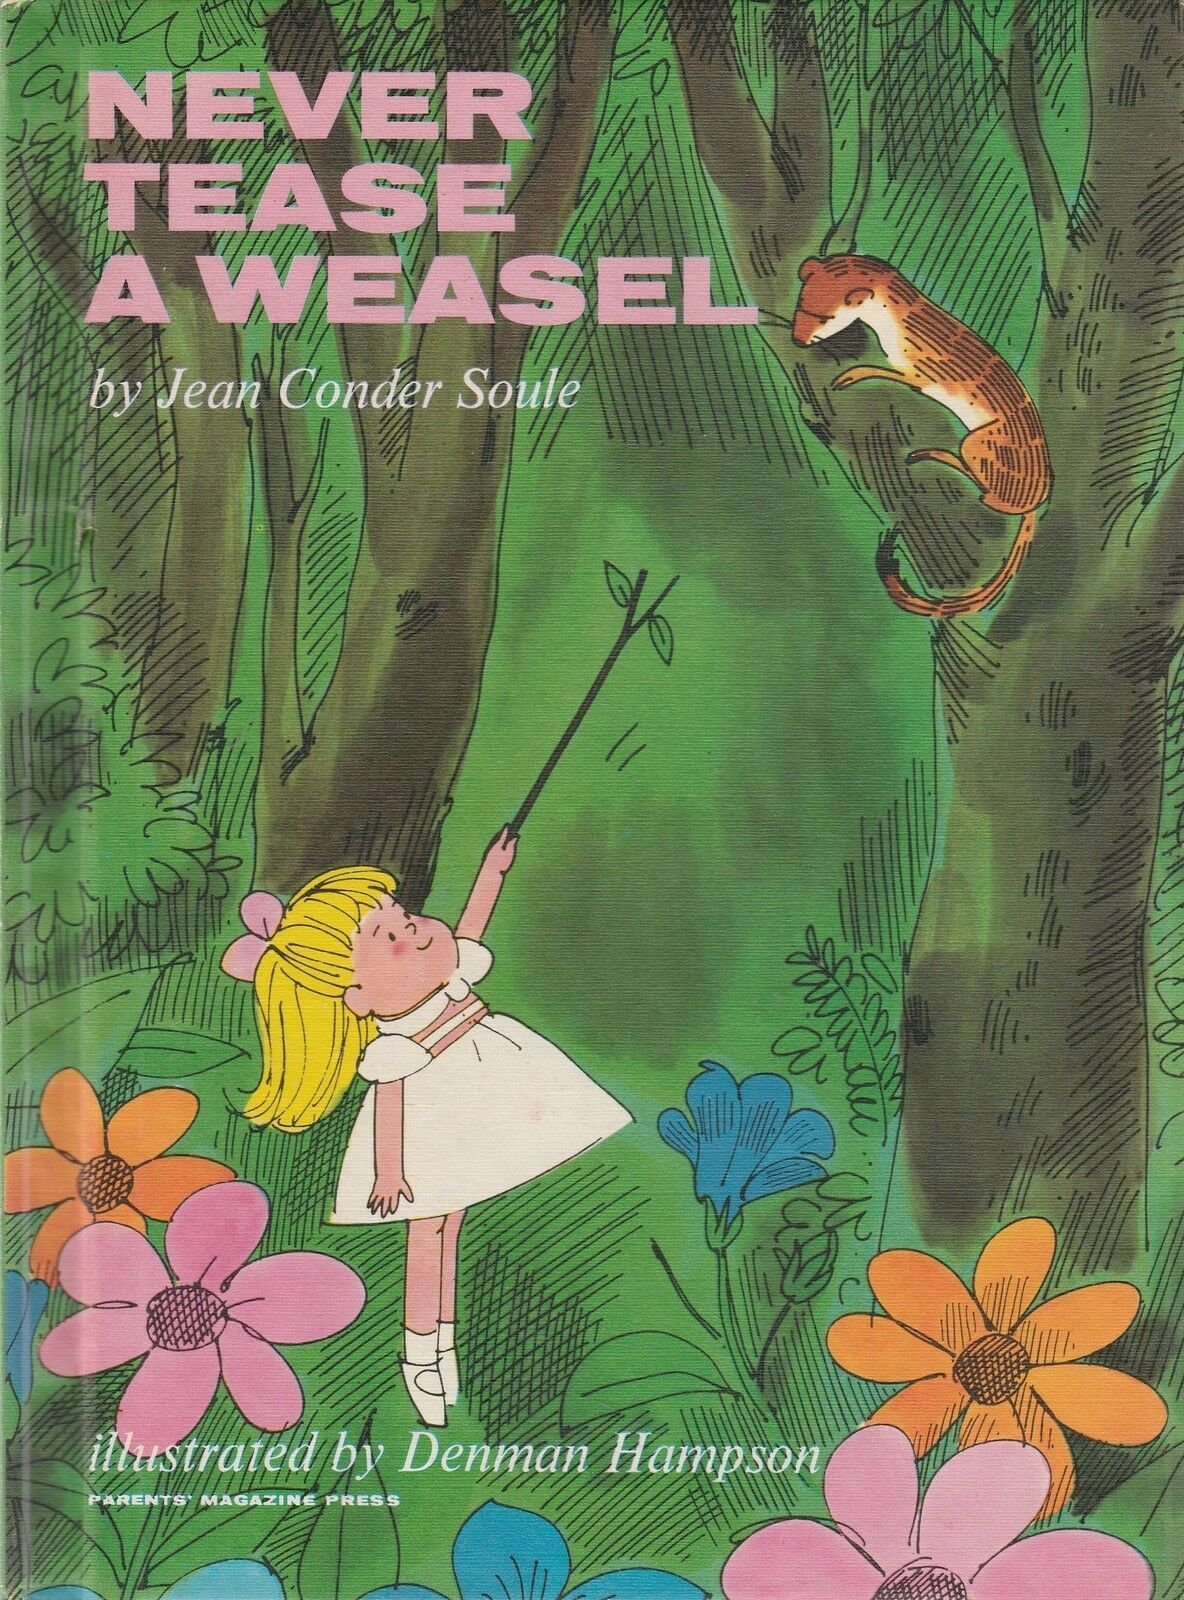 Never Tease a Weasel by Jean Conder Soule 1964 Vintage Hardcover Picture Book